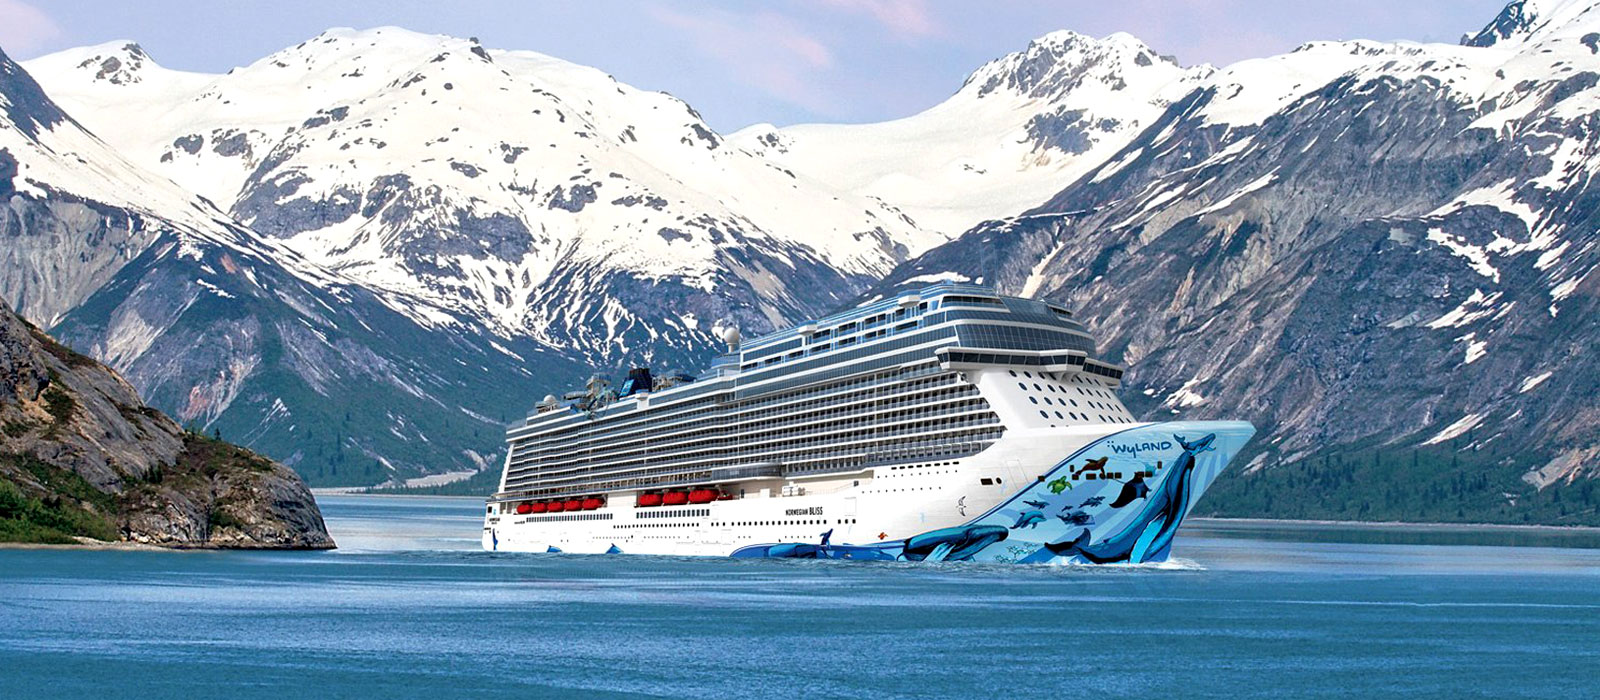 ŵΨ������ Norwegian Cruise Line ���ú� Bliss ̫ƽ��,������,���ձȺ�,�������˺�27�����ִ�Խ֮�� 2019��11��1�ձ������� ��ɼ�Ǵ� ���߱��:7719110213